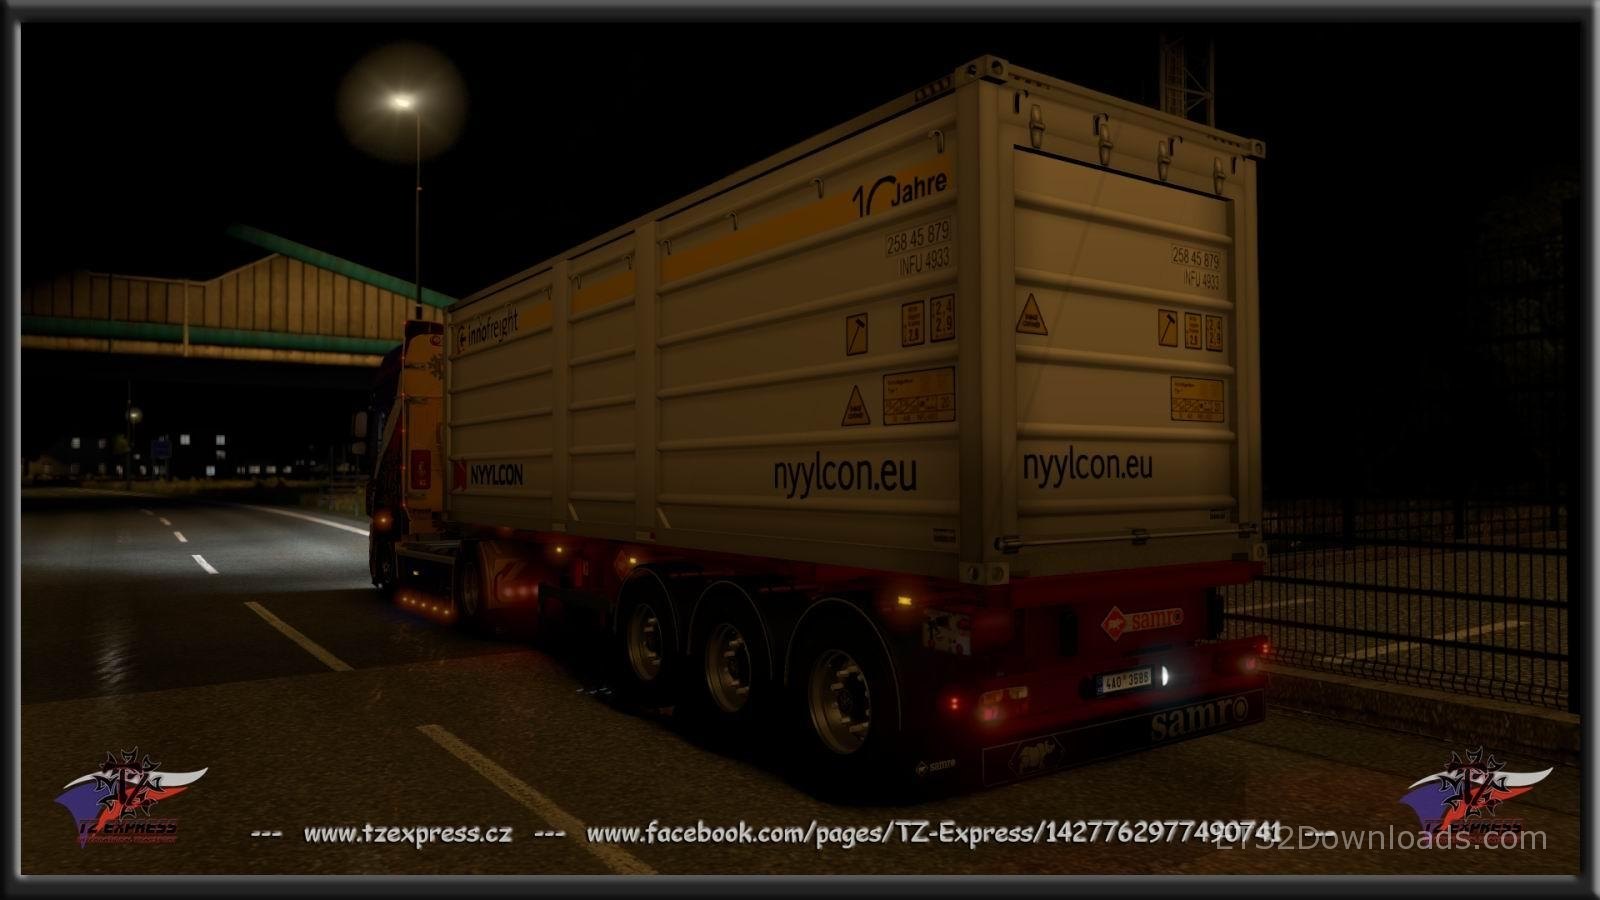 samro-nyylcon-container-2